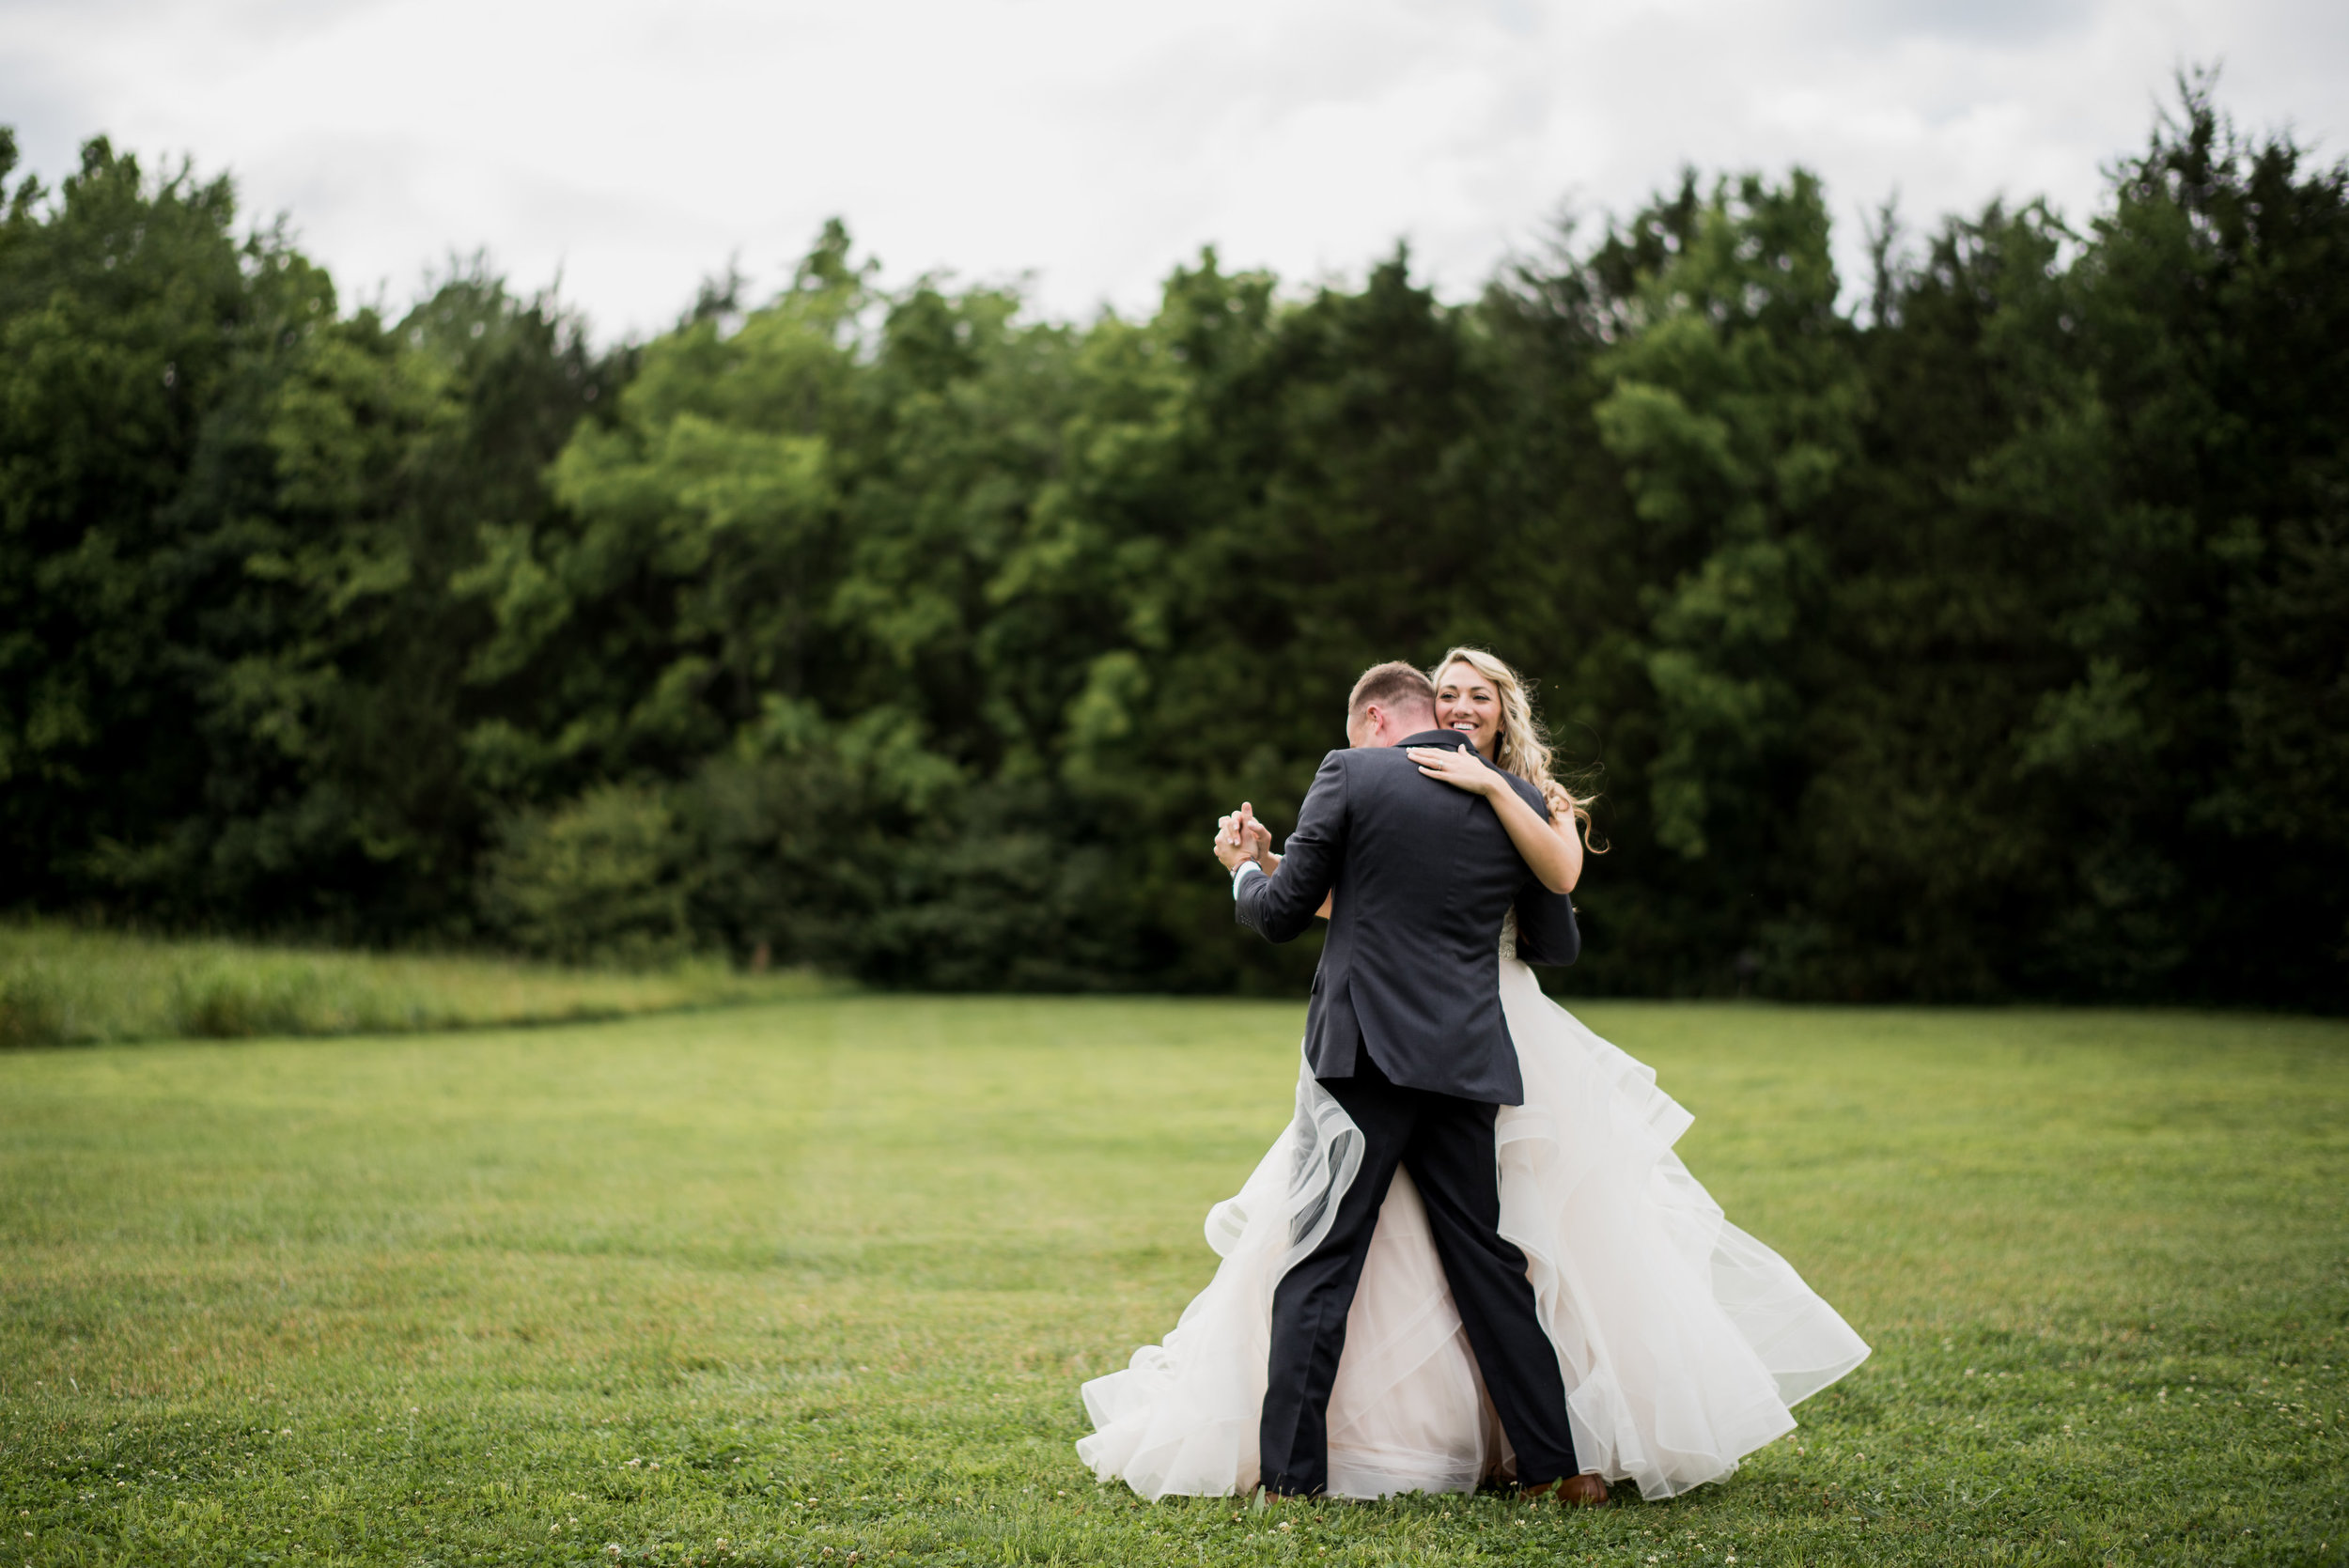 Nashville Wedding Photographers Drakewood Farm-341.jpg